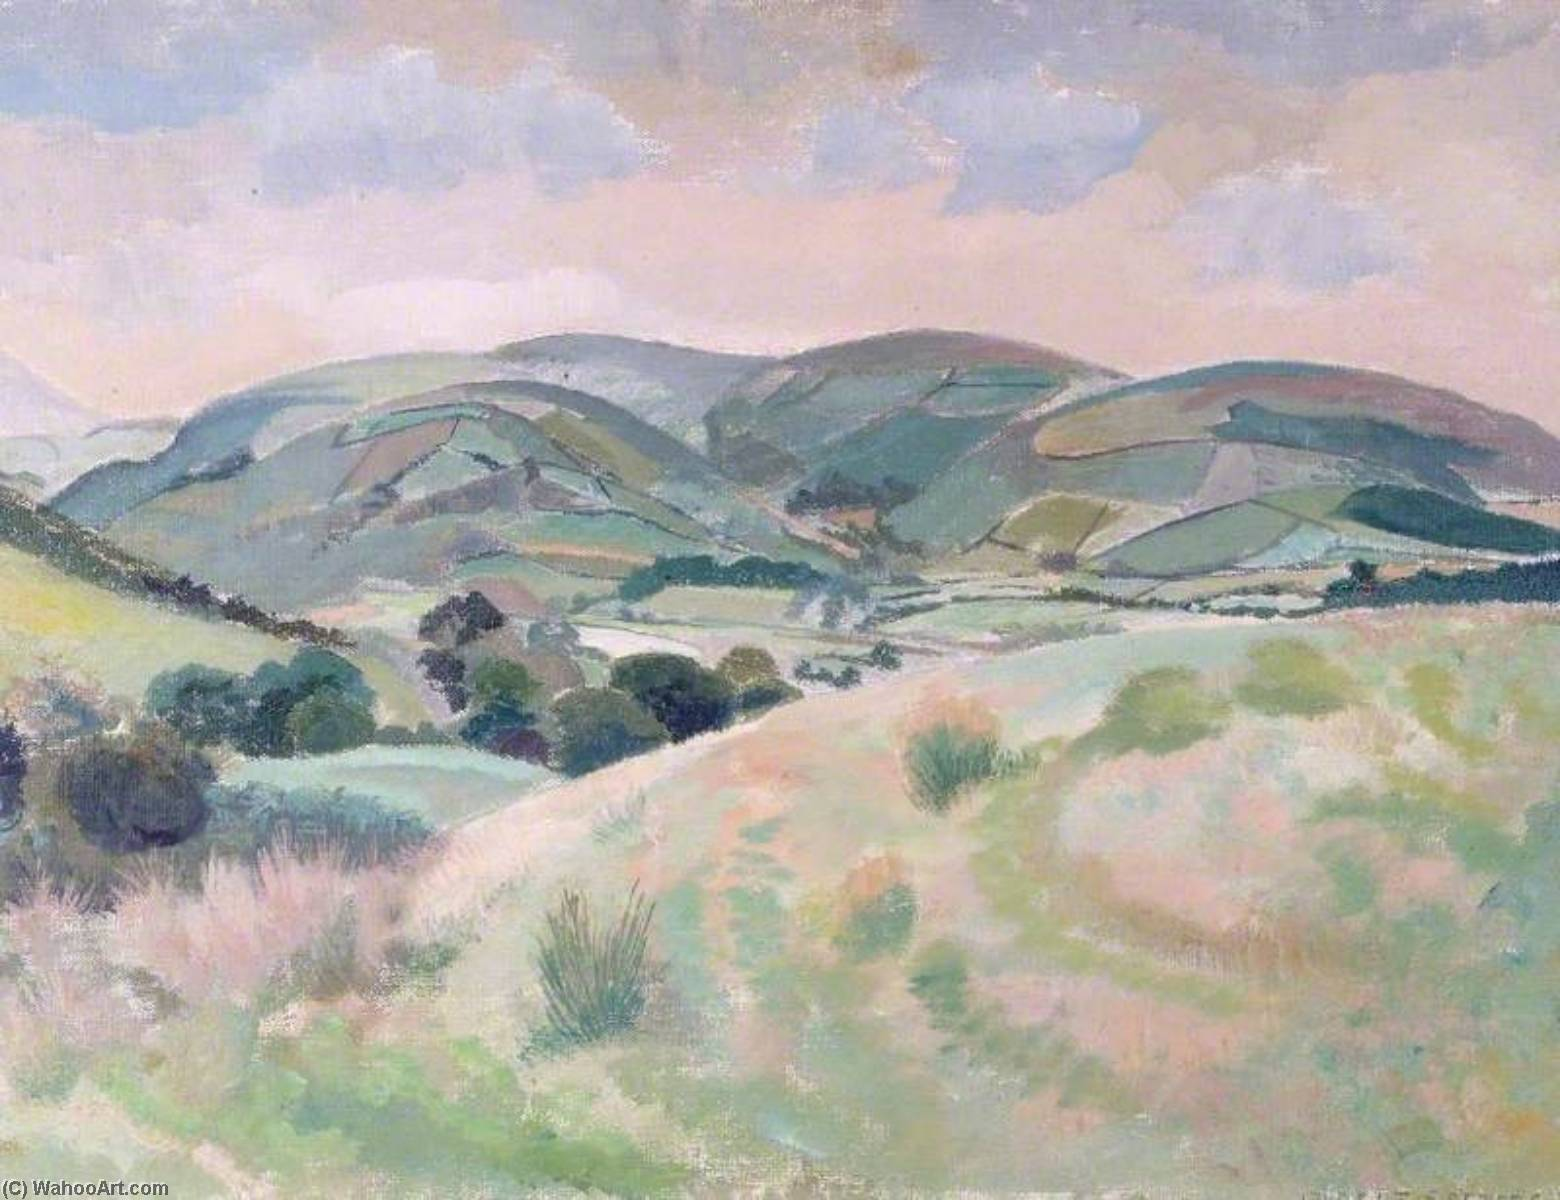 Bryn og, 1952 de Gilbert Spencer (1892-1979, United Kingdom) | Reproduction Peinture | WahooArt.com